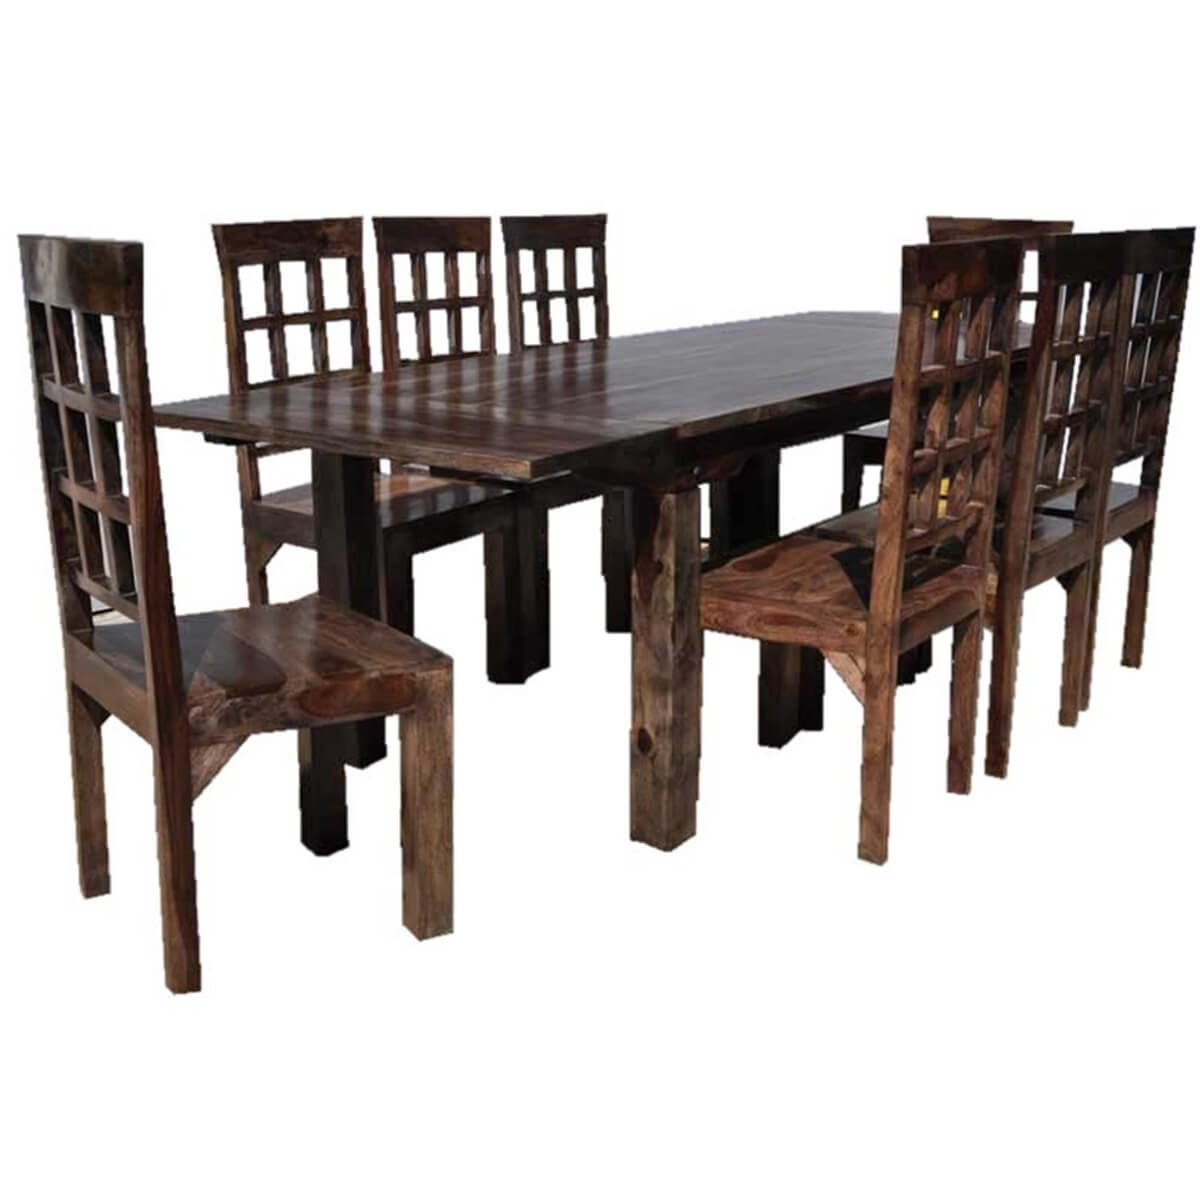 Portland Rustic Furniture Extendable Dining Room Table